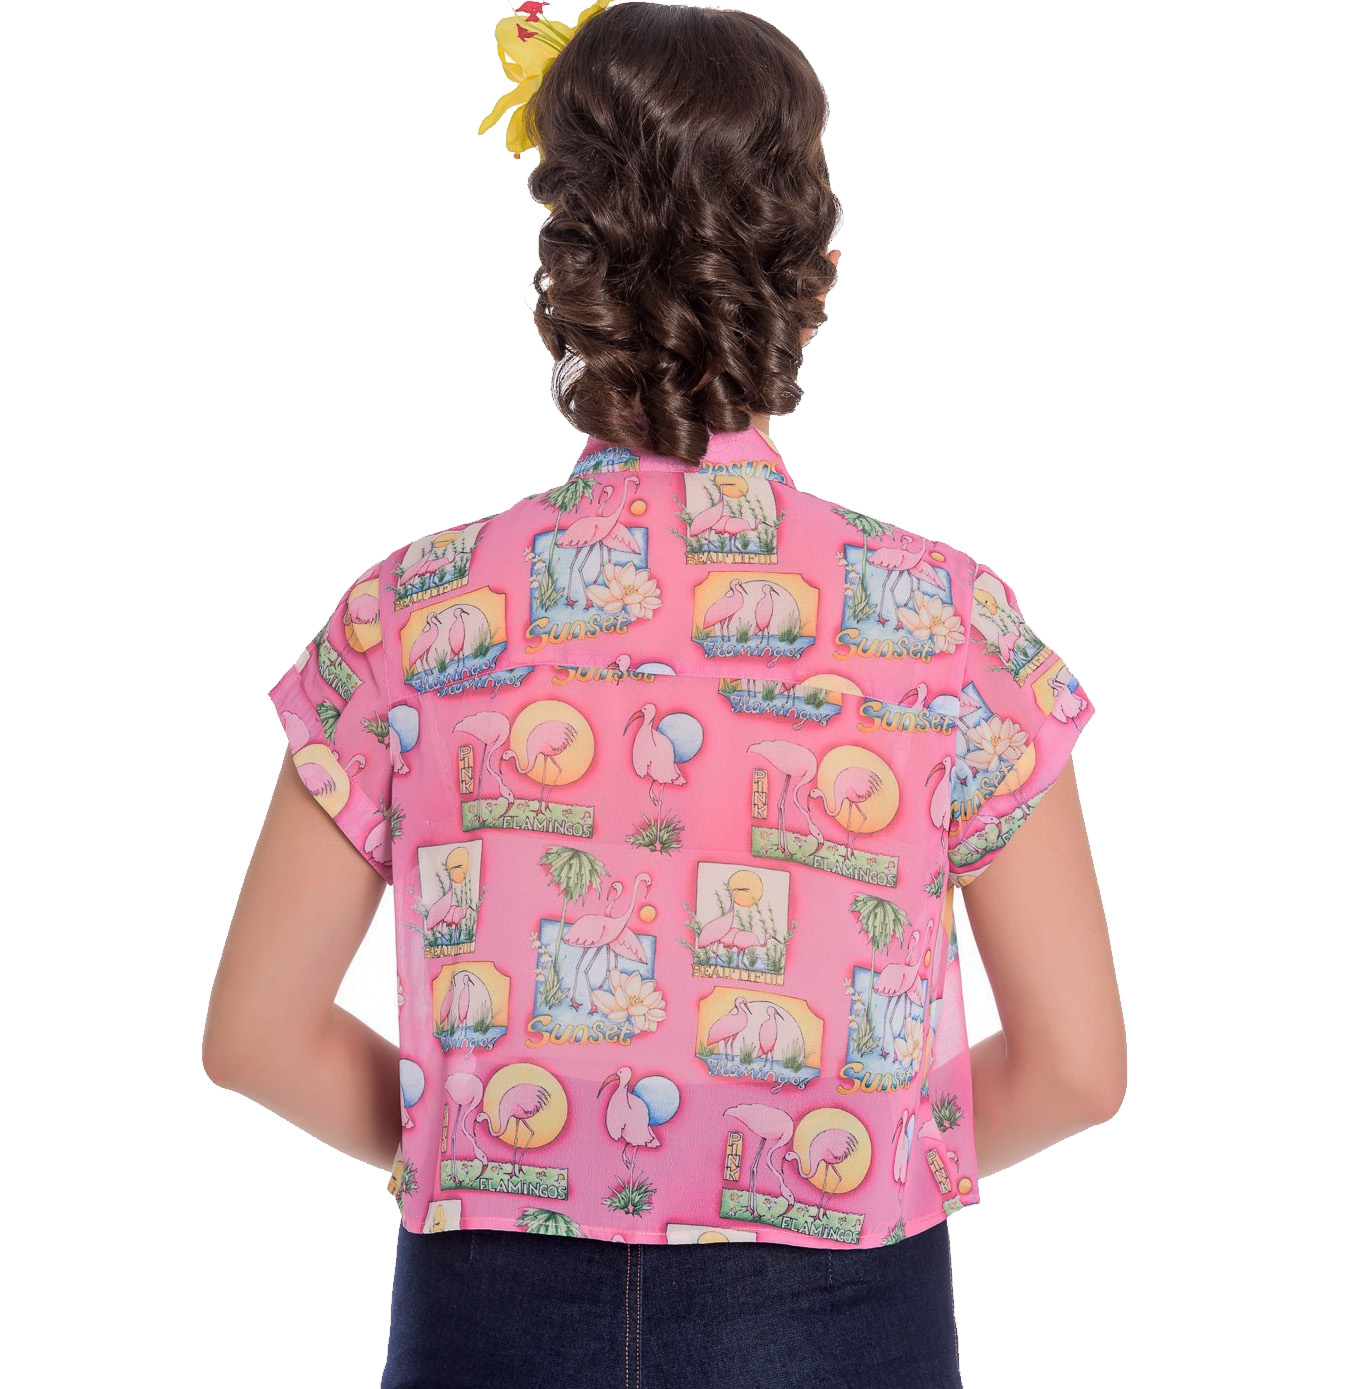 thumbnail 24 - Hell Bunny 50s Retro Top Pink Flamingo MAXINE Cropped Blouse Shirt All Sizes